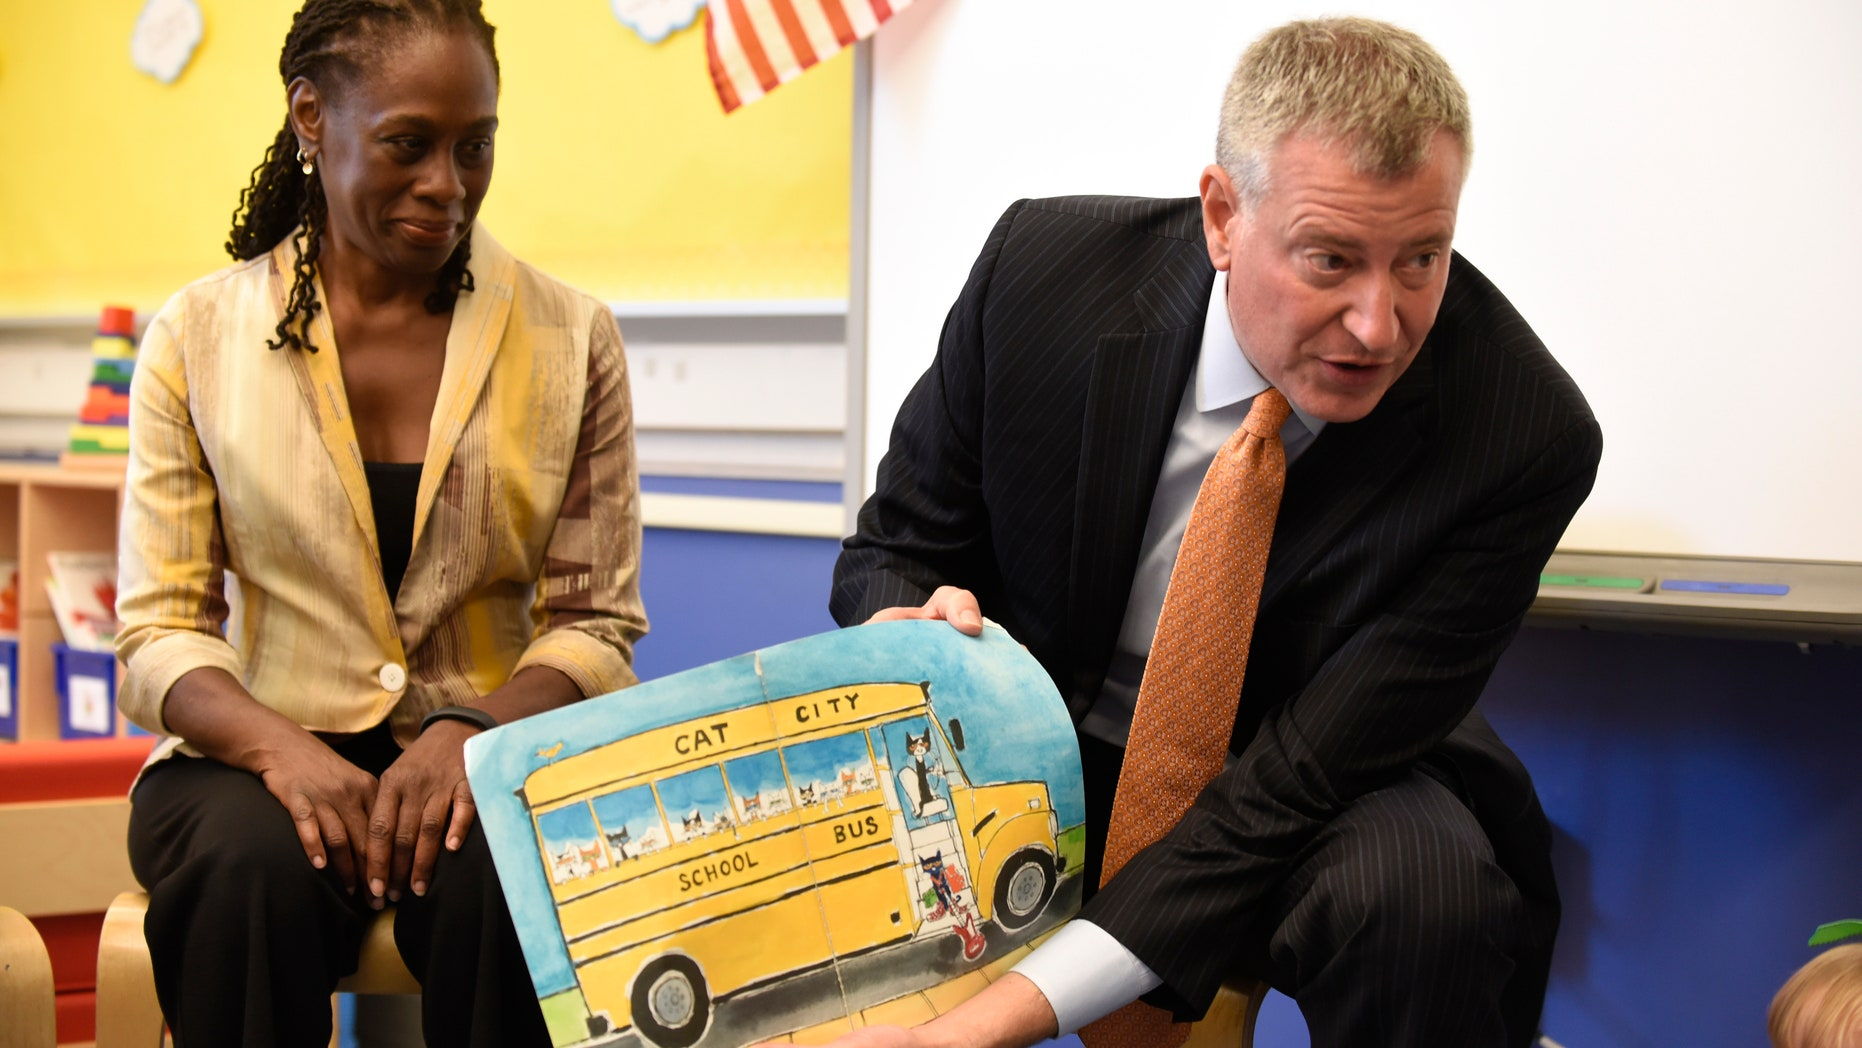 New York City Mayor Bill de Blasio (R) reads a book to pre-K students on their first day of school at Public School 59 in Staten Island, New York, September 9, 2015.  At left is First Lady Chirlane McCray.  REUTERS/Barry Williams/Pool